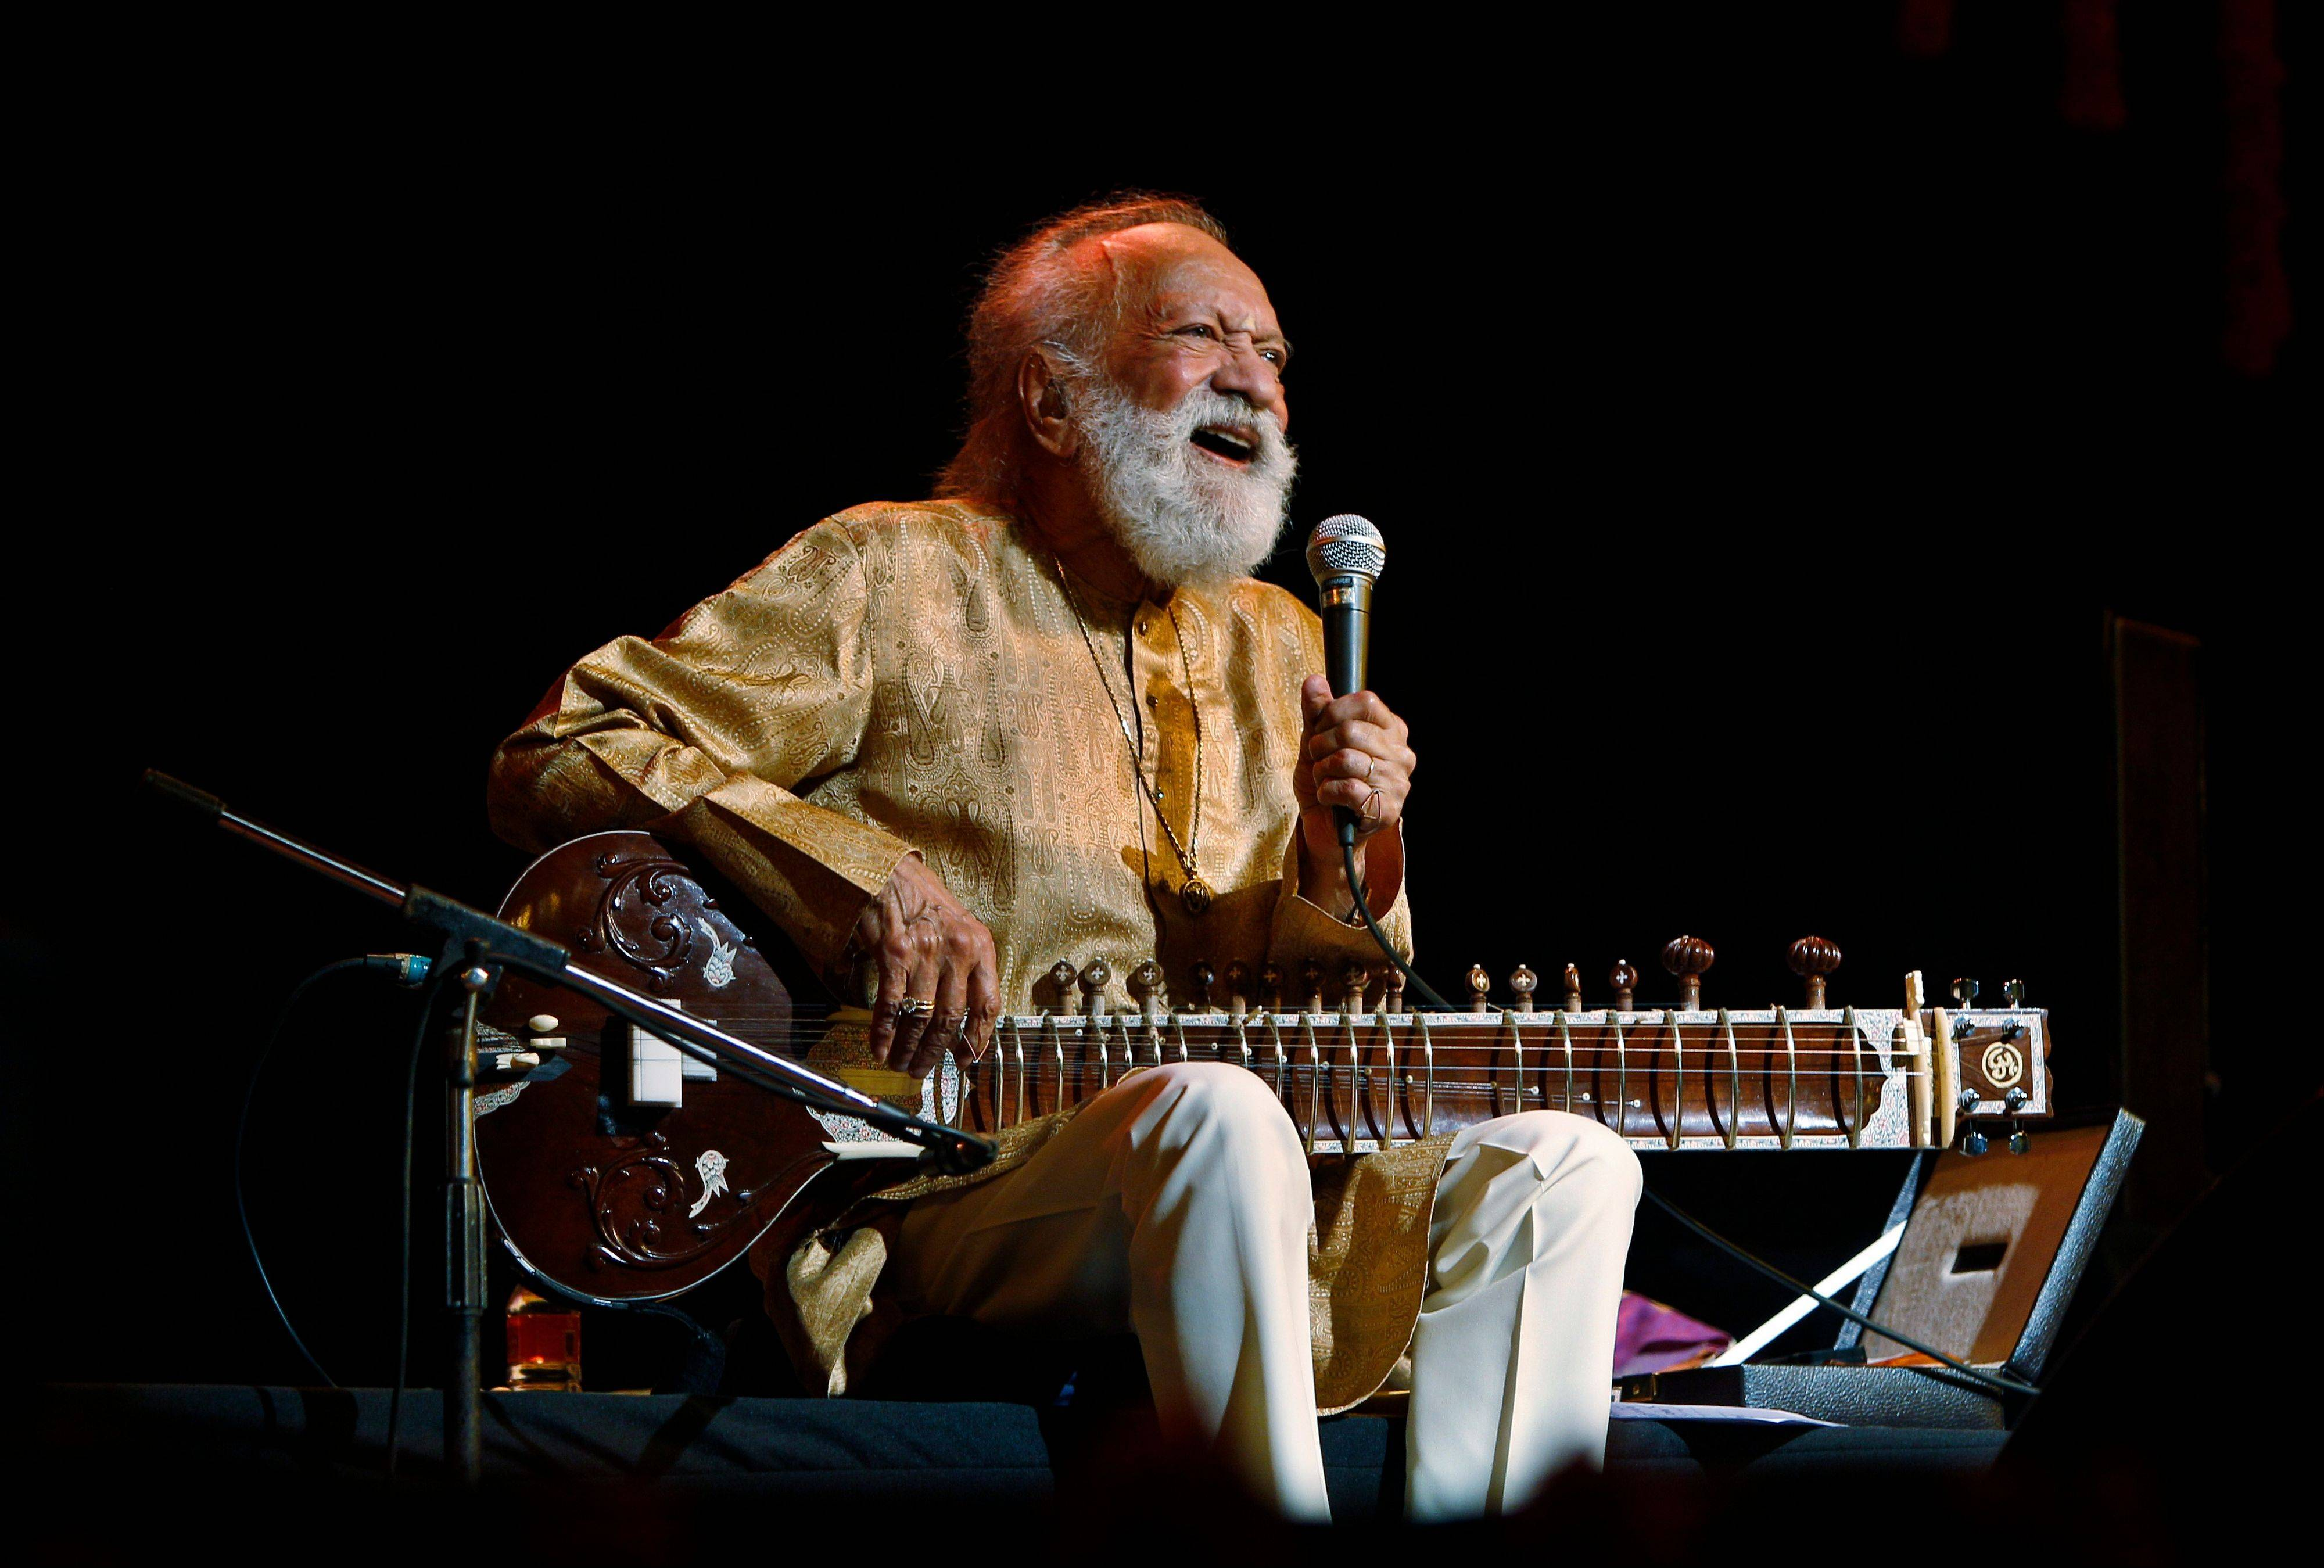 Indian musician Ravi Shankar laughs as he speaks during a concert in Bangalore, India.